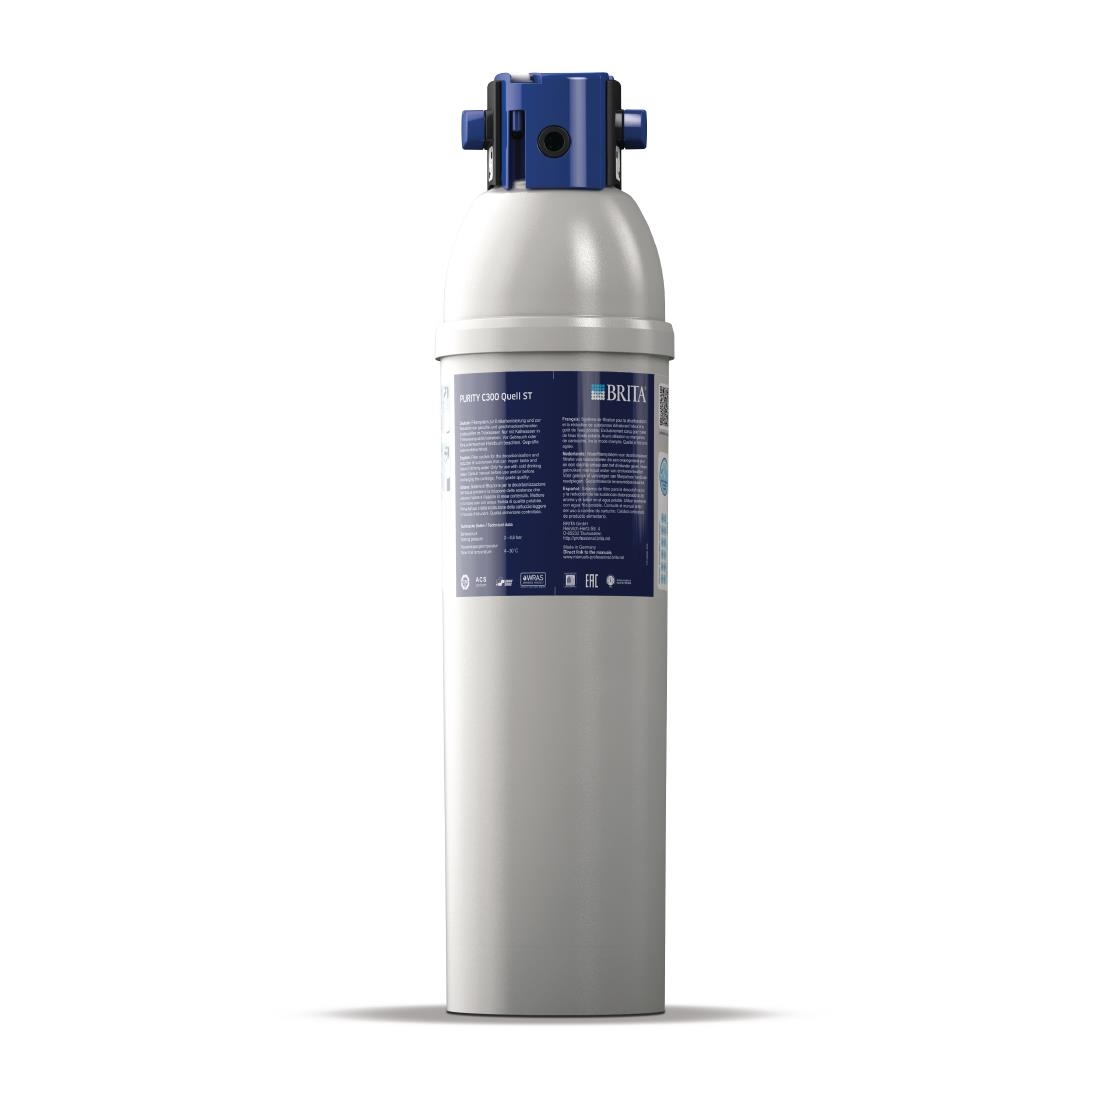 Image of Brita Purity C 300 Water Filter System